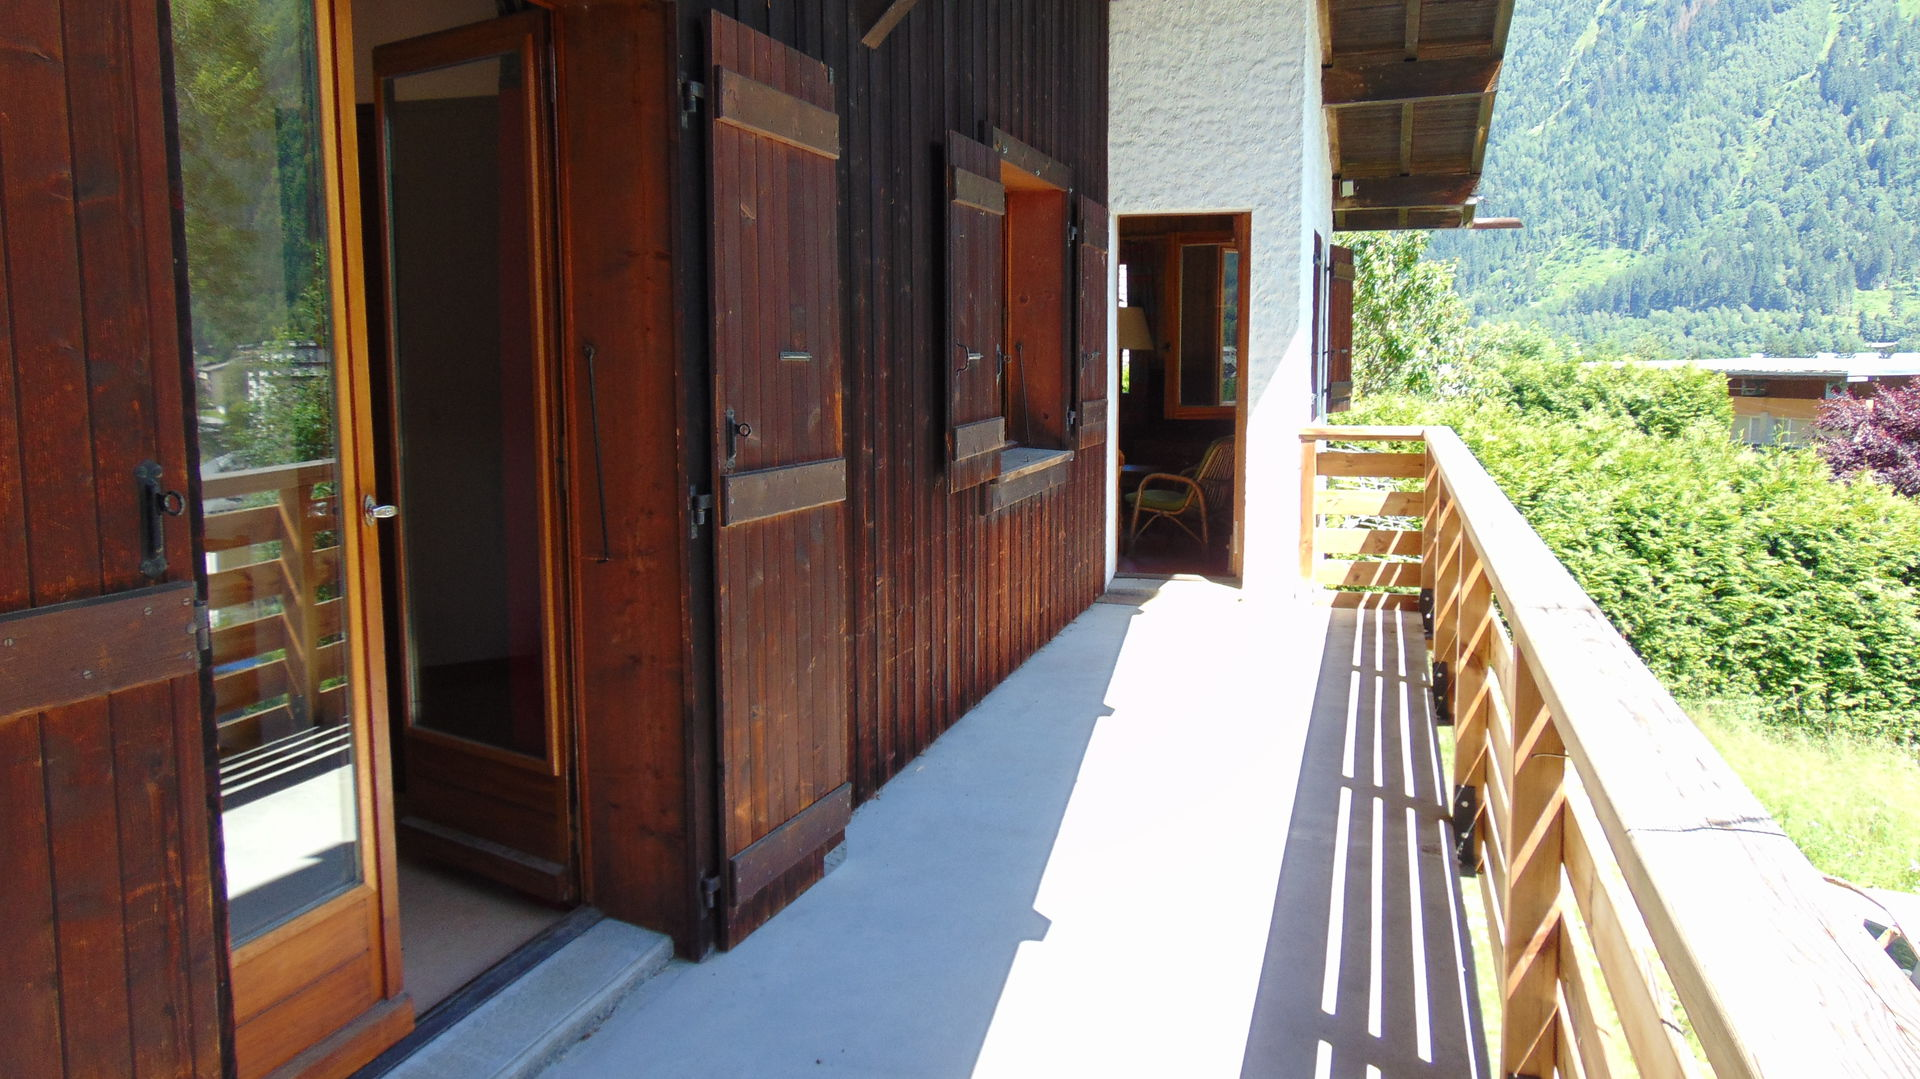 Chalet Bois Prin In Chamonix Self Catered 5 Bedrooms # Living En Bois